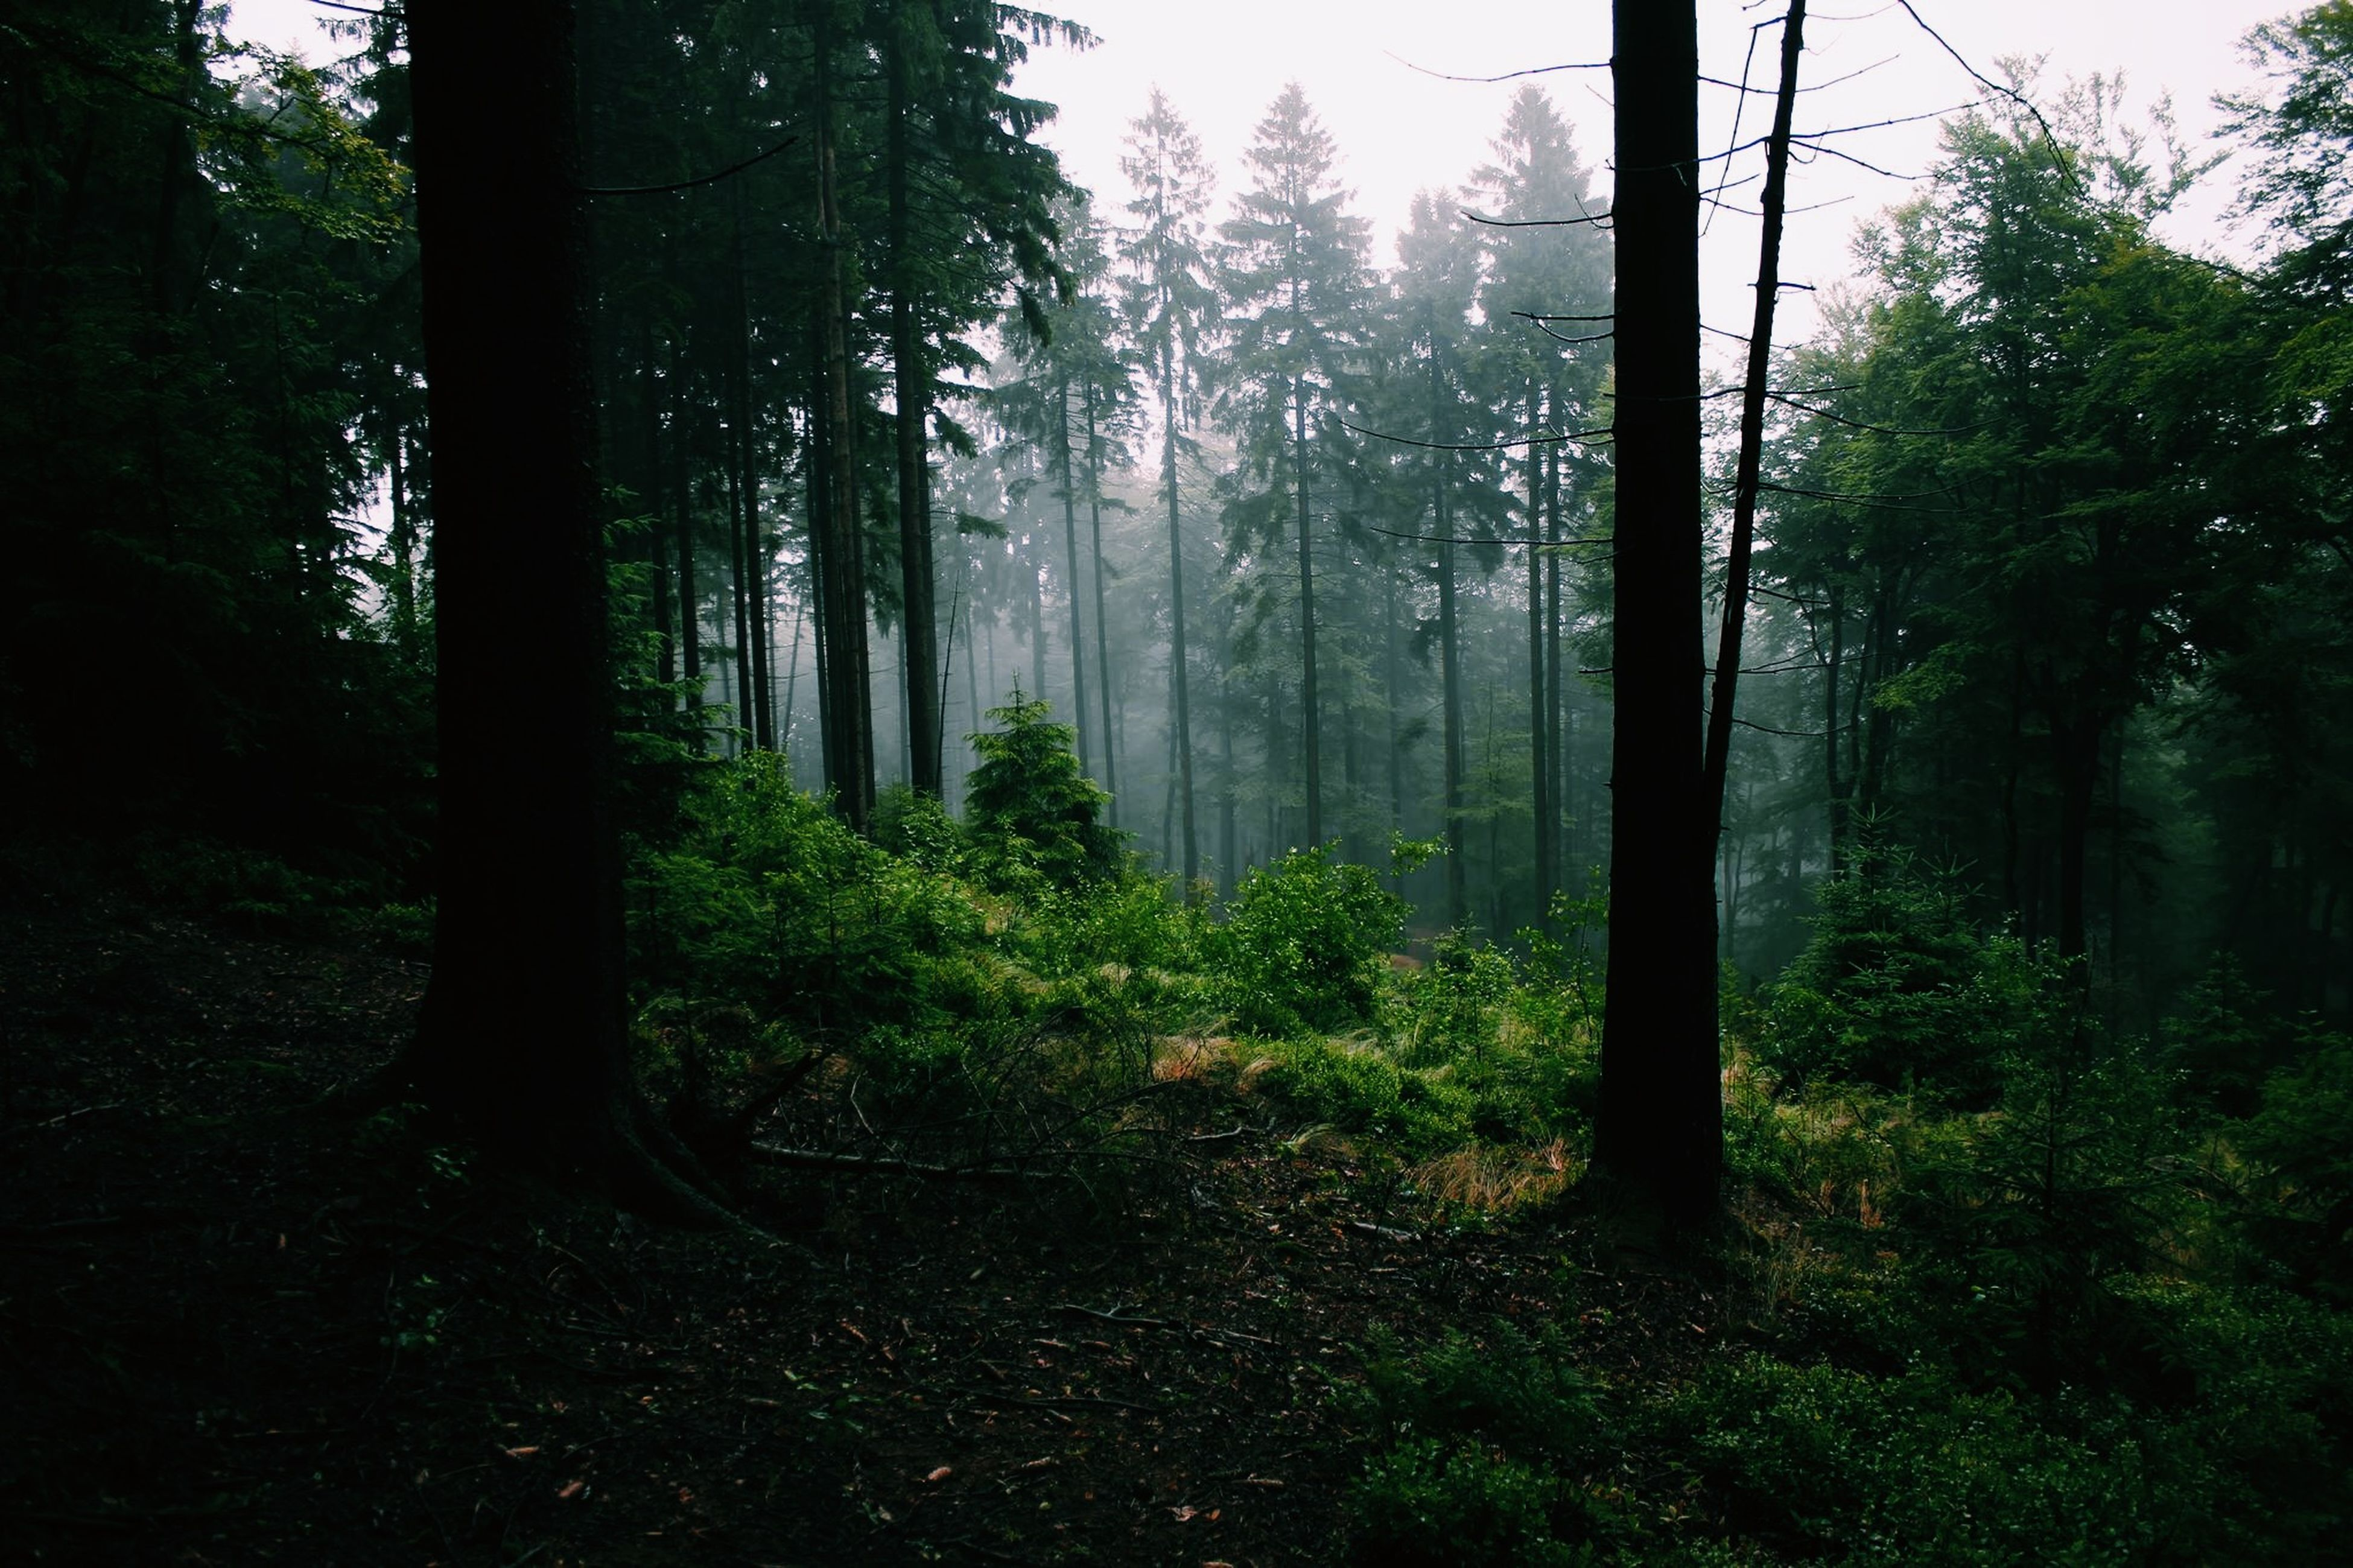 tree, forest, tree trunk, tranquility, growth, tranquil scene, woodland, nature, beauty in nature, scenics, sunlight, green color, branch, non-urban scene, landscape, day, idyllic, outdoors, plant, fog